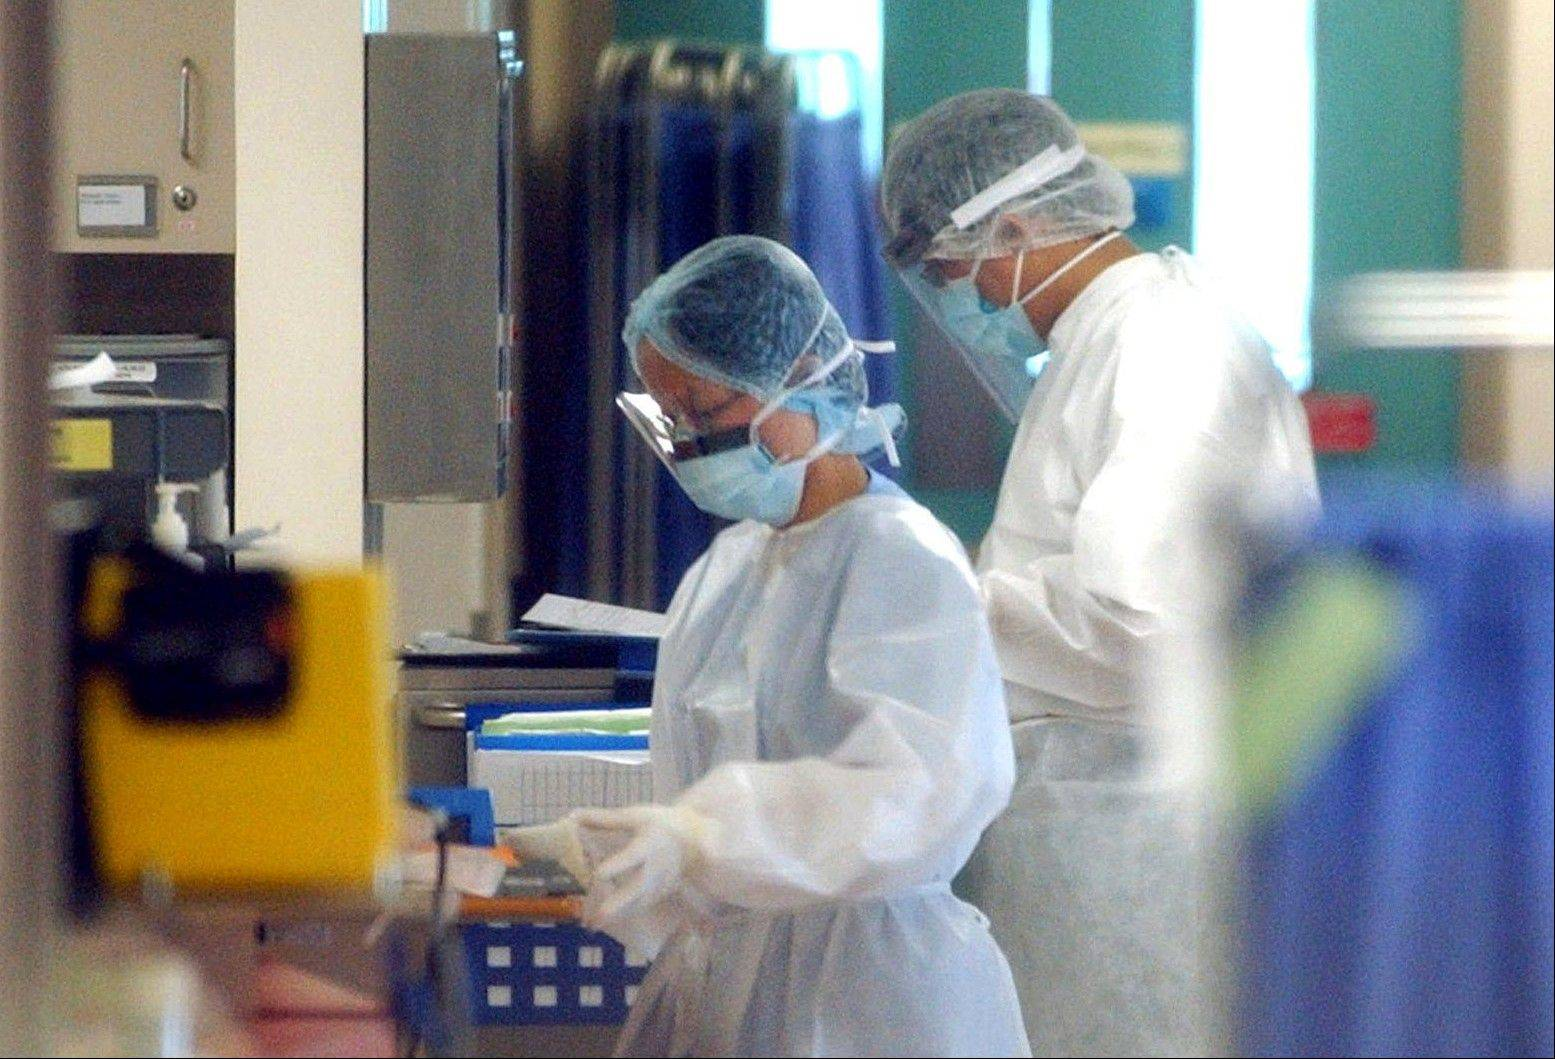 Health workers wear protective gear in the Alice Ho Miu Ling Nethersole Hospital in Hong Kong where 24 patients were quarantined after seven of its health workers developed SARS, flu-like symptoms similar to the Coronavirus. A coronavirus infection related to SARS, which killed about 800 people in 2003, mostly in Asia, is now being reported mainly in the Middle East. T